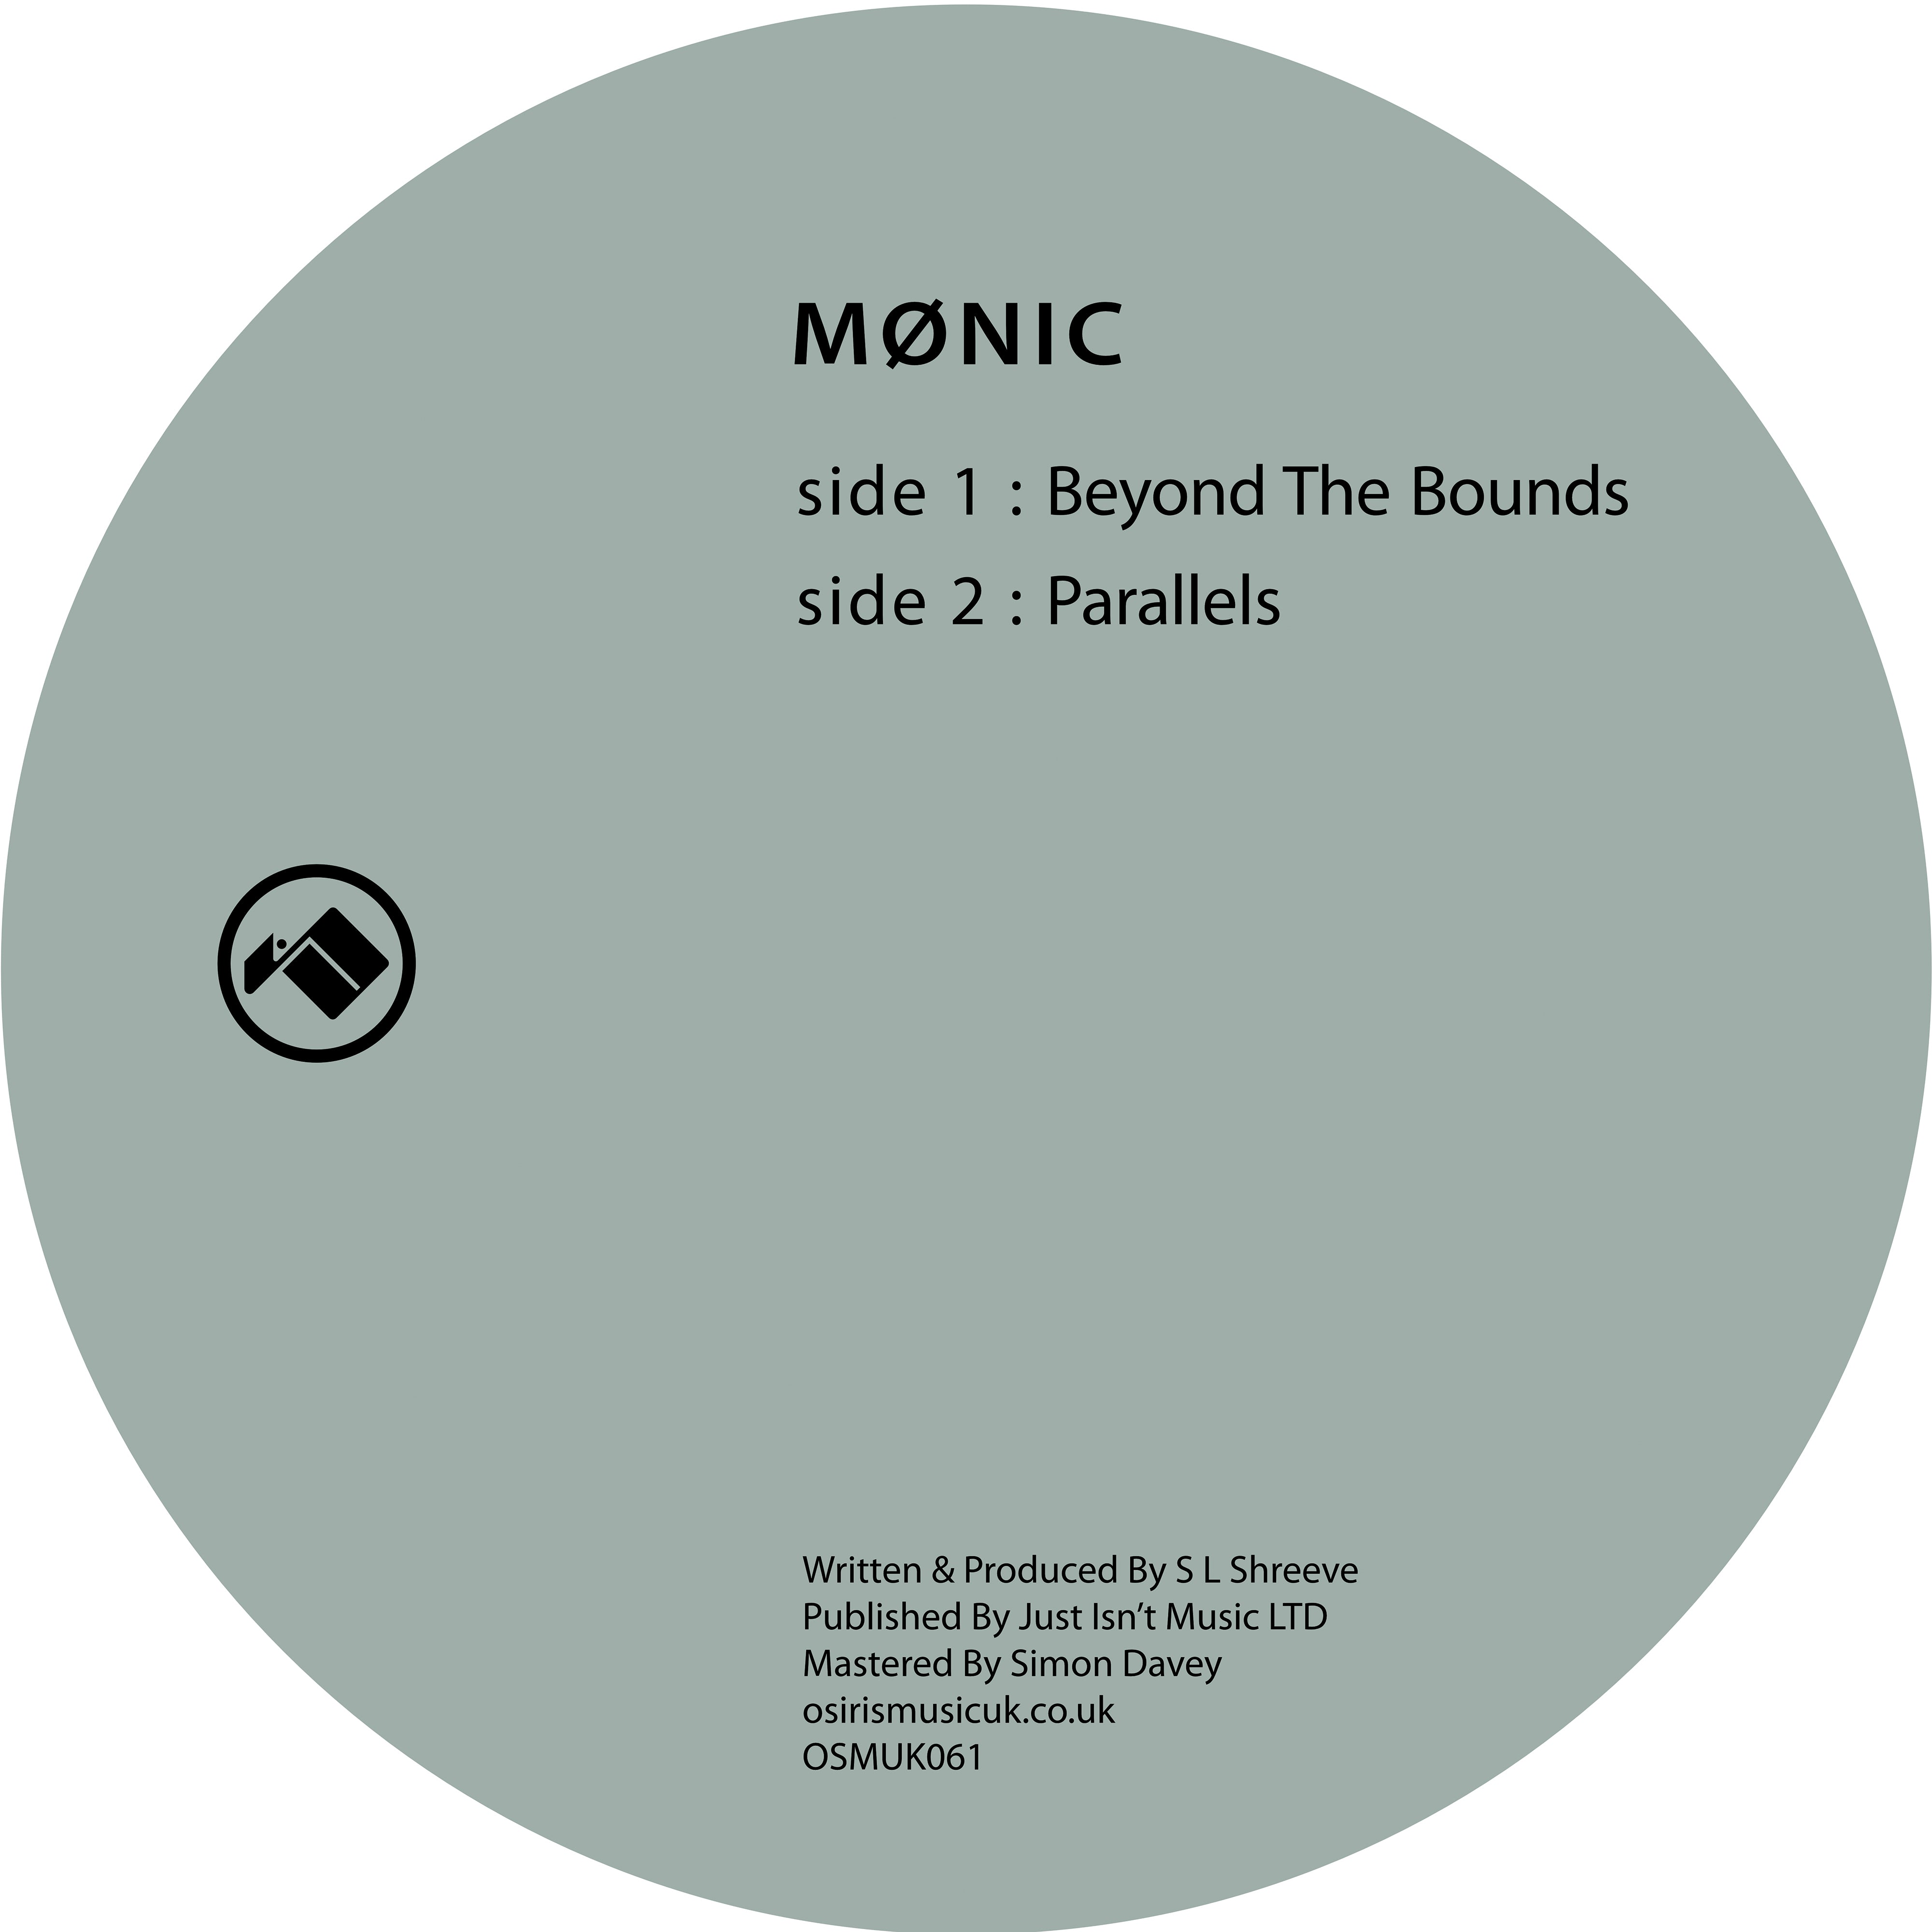 Mønic - Beyond The Bounds